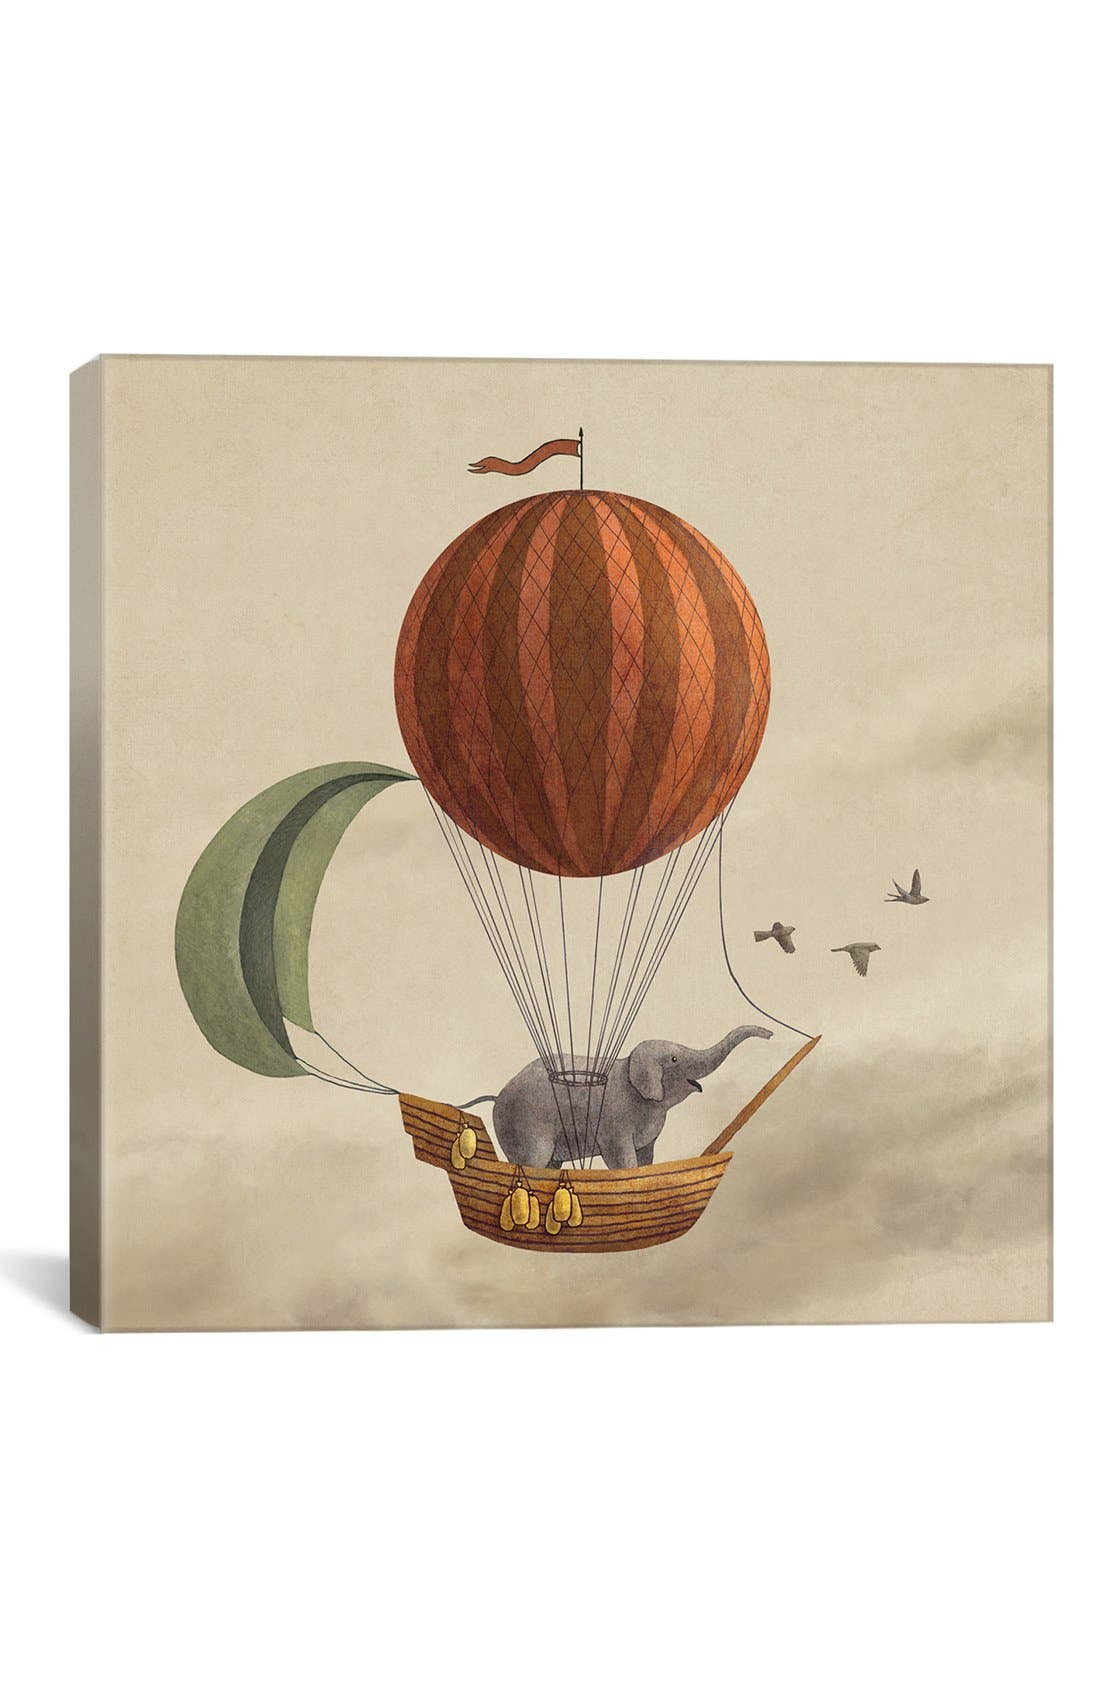 Alternate Image 1 Selected - iCanvas 'Adventure Awaits - Terry Fan' Giclée Print Canvas Art (Nordstrom Exclusive)